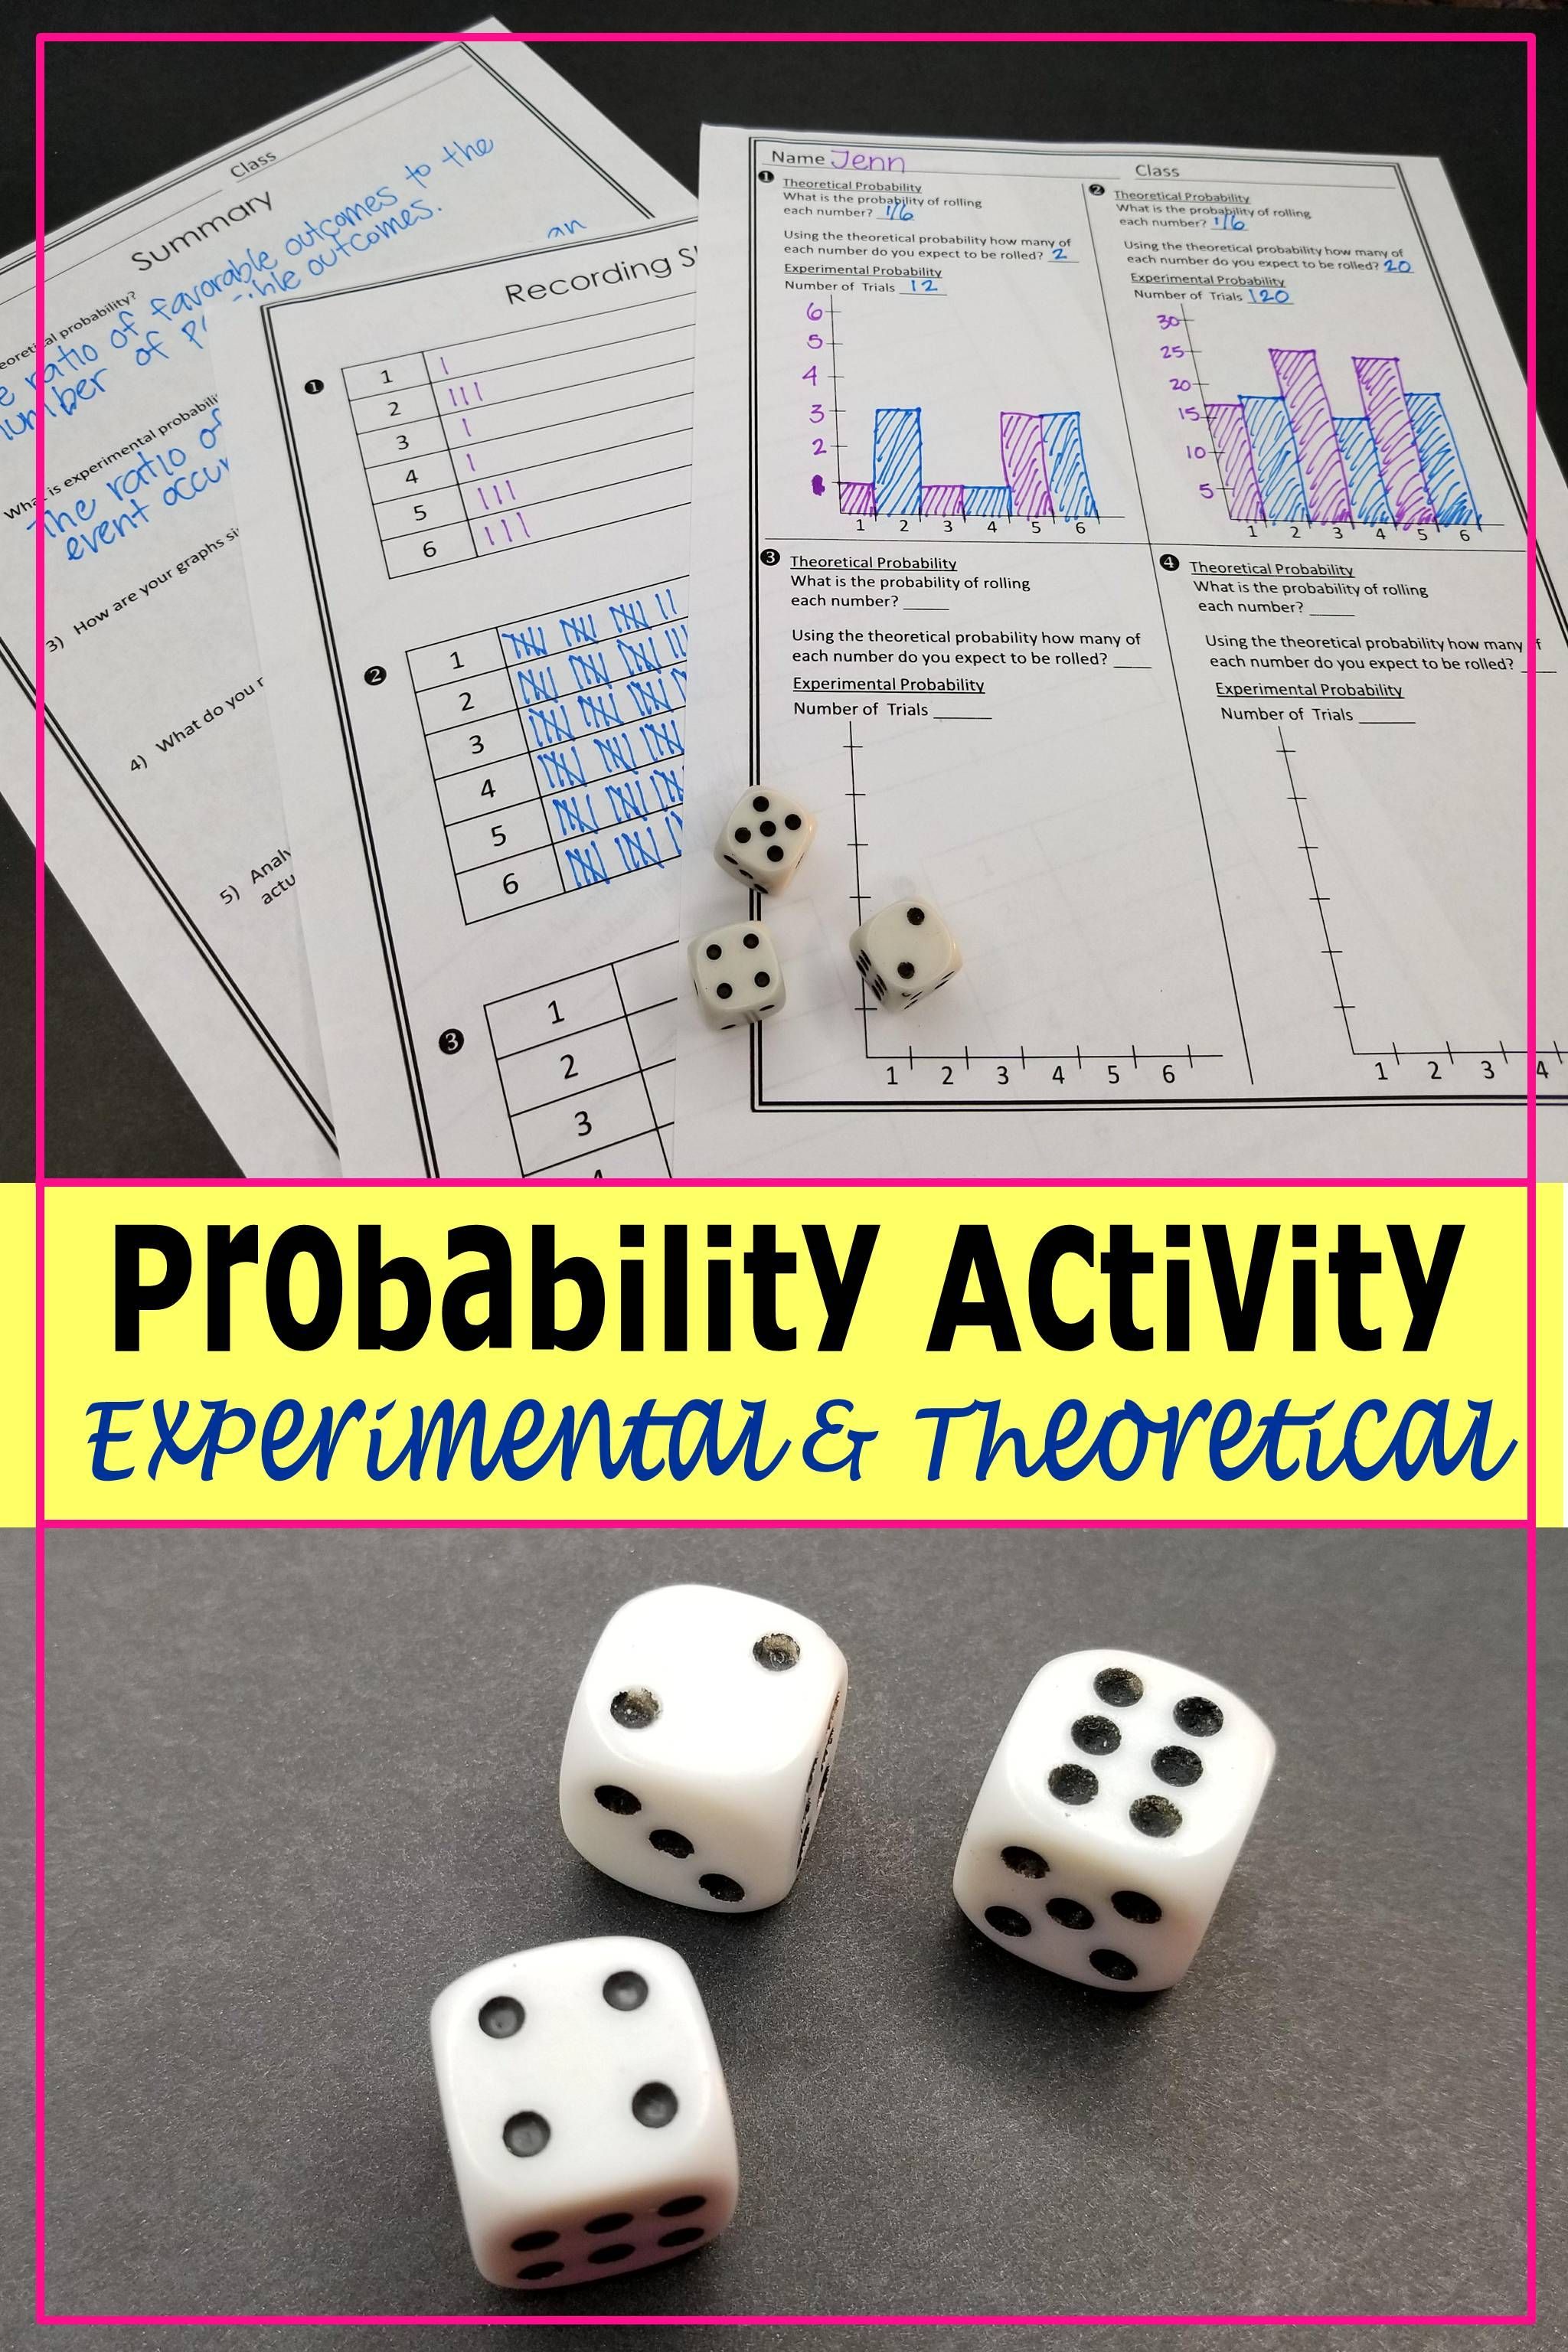 Theoretical And Experimental Probability Activity